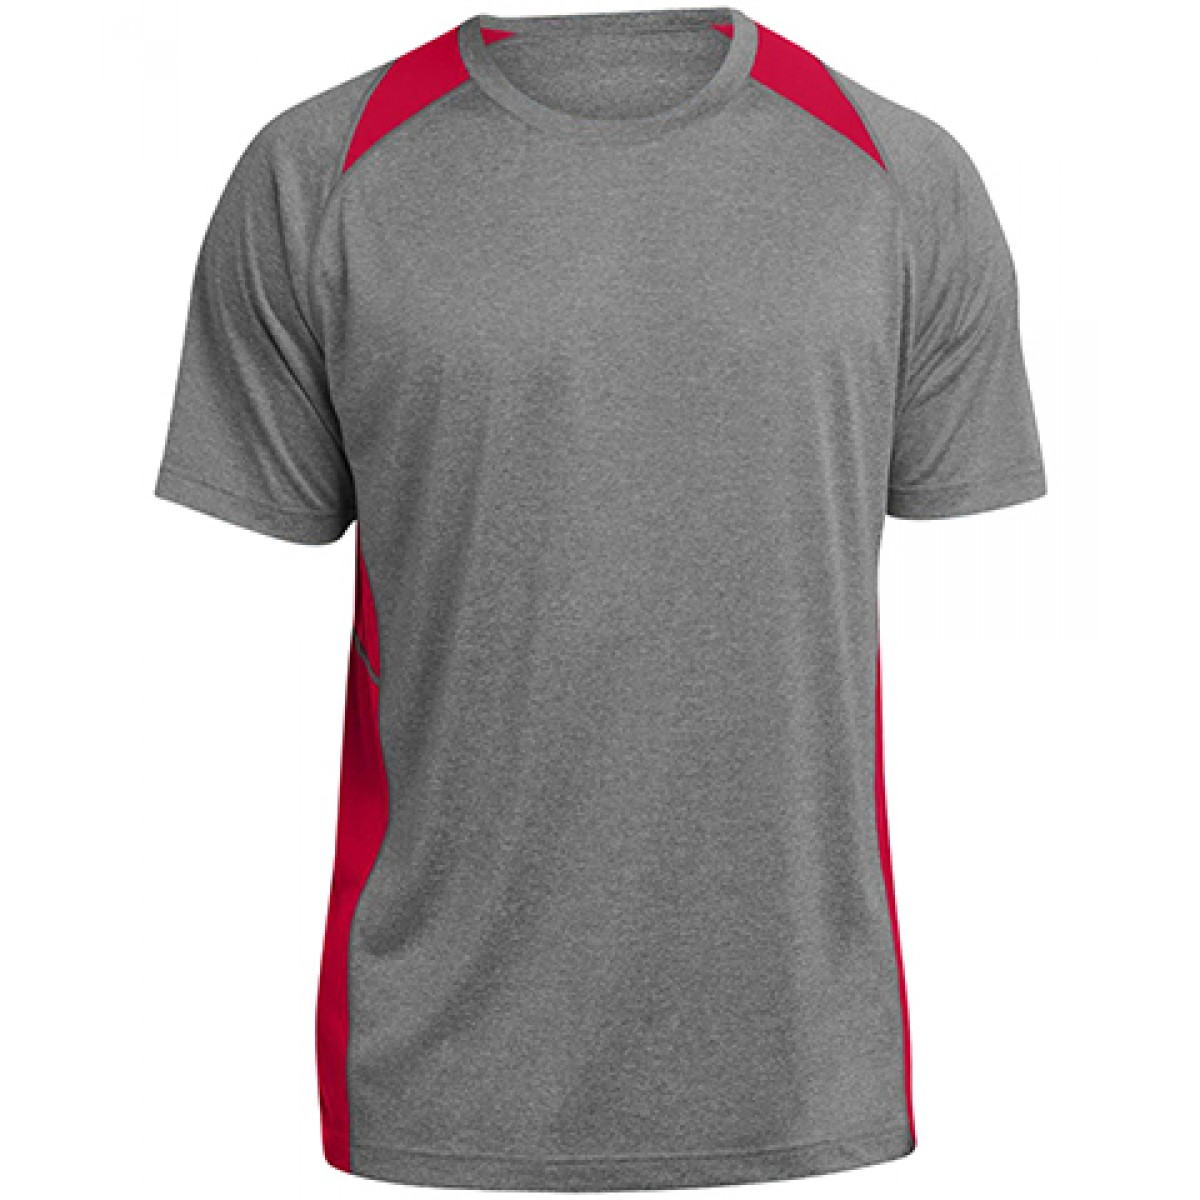 Heather Colorblock Contender™ Tee-Gray/Red-L